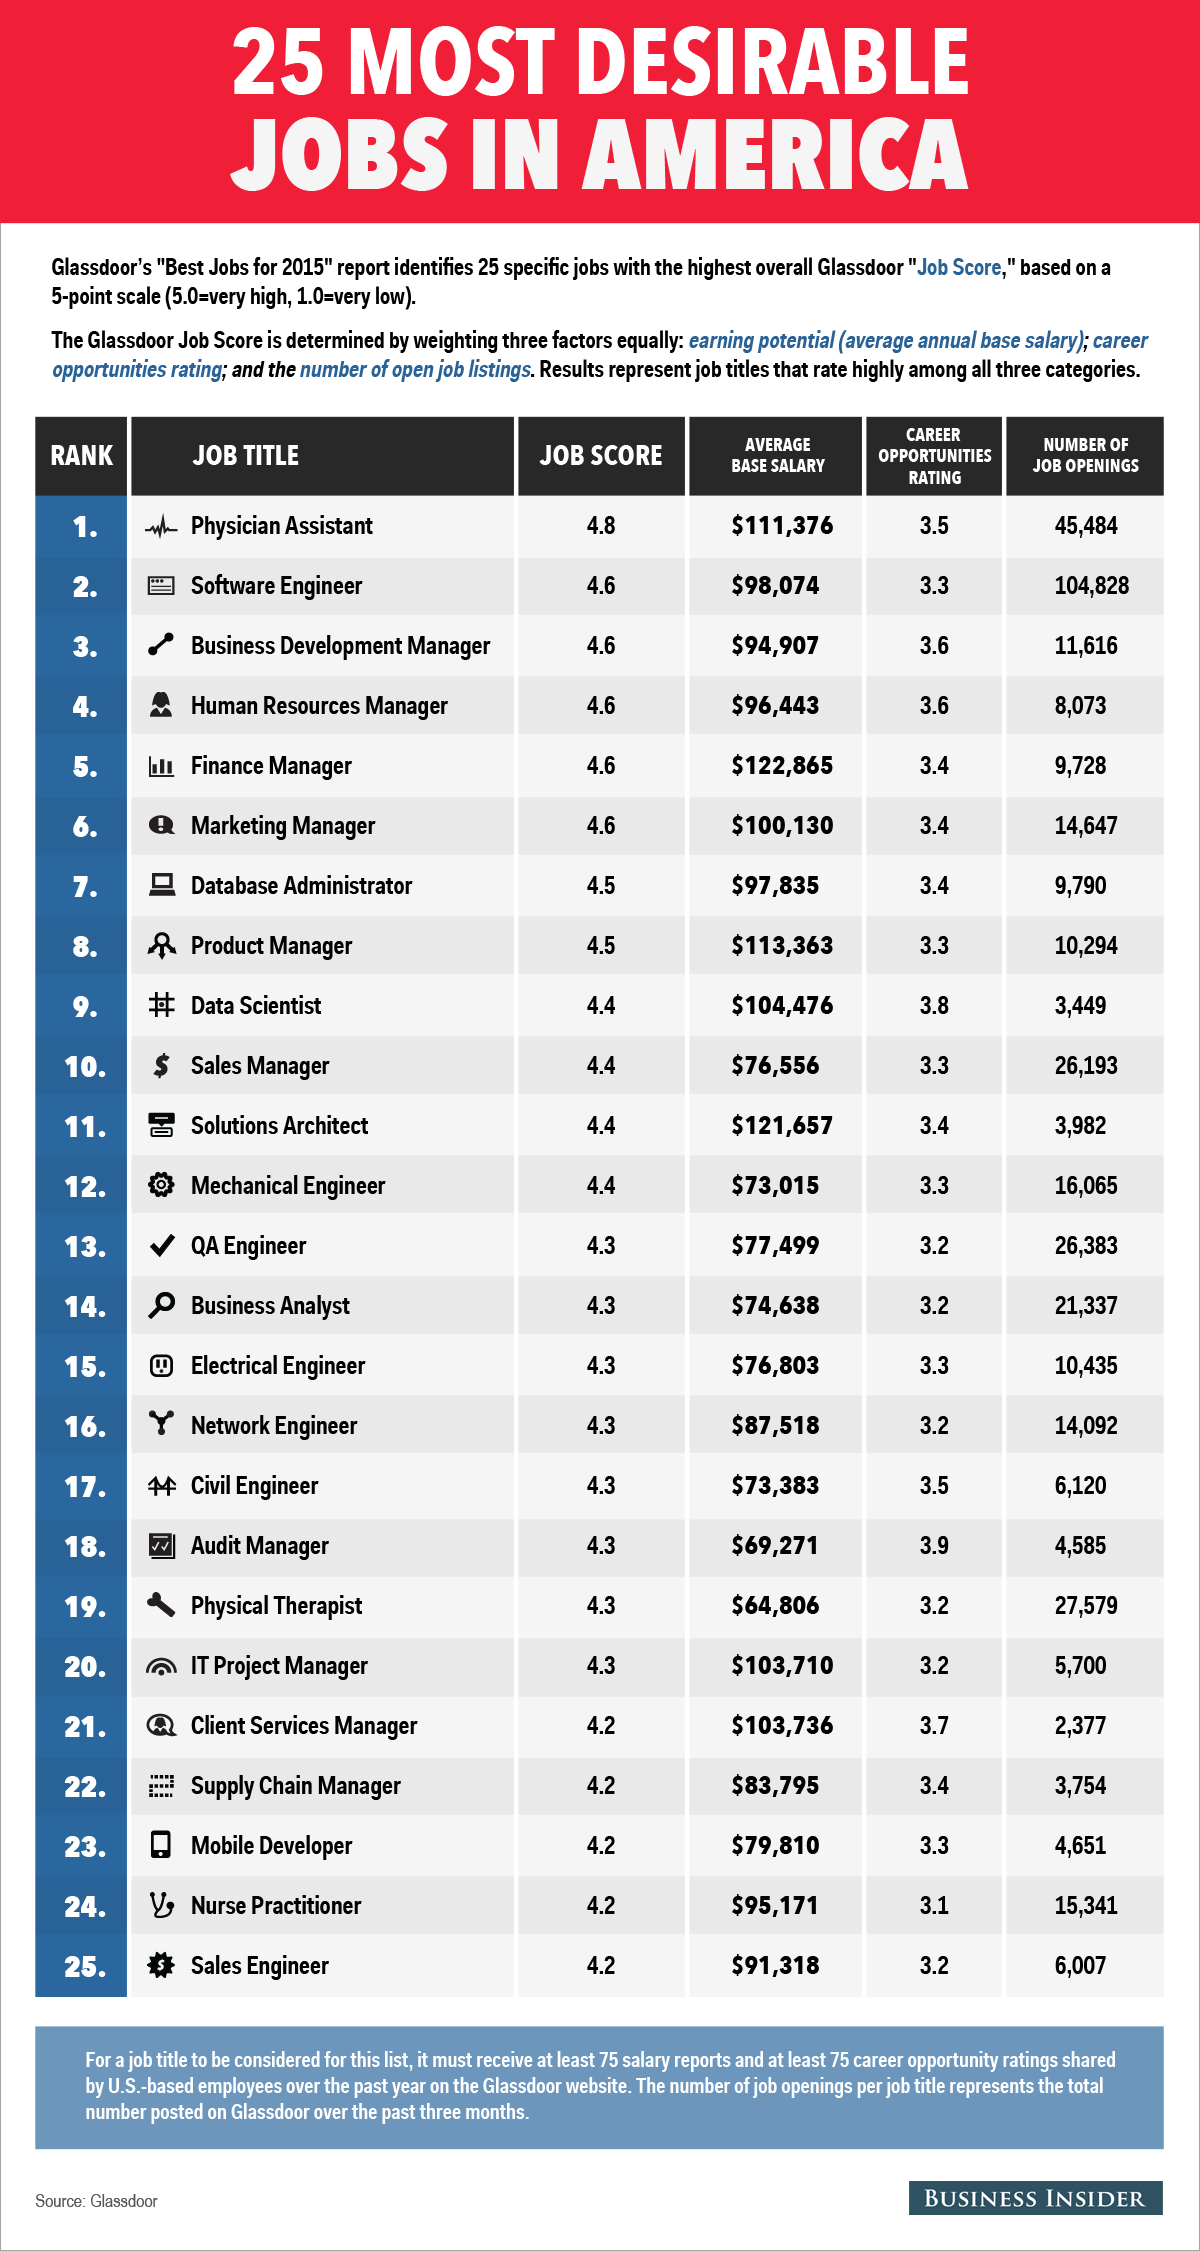 The 25 Most Desirable Jobs In America Charts & Graphs